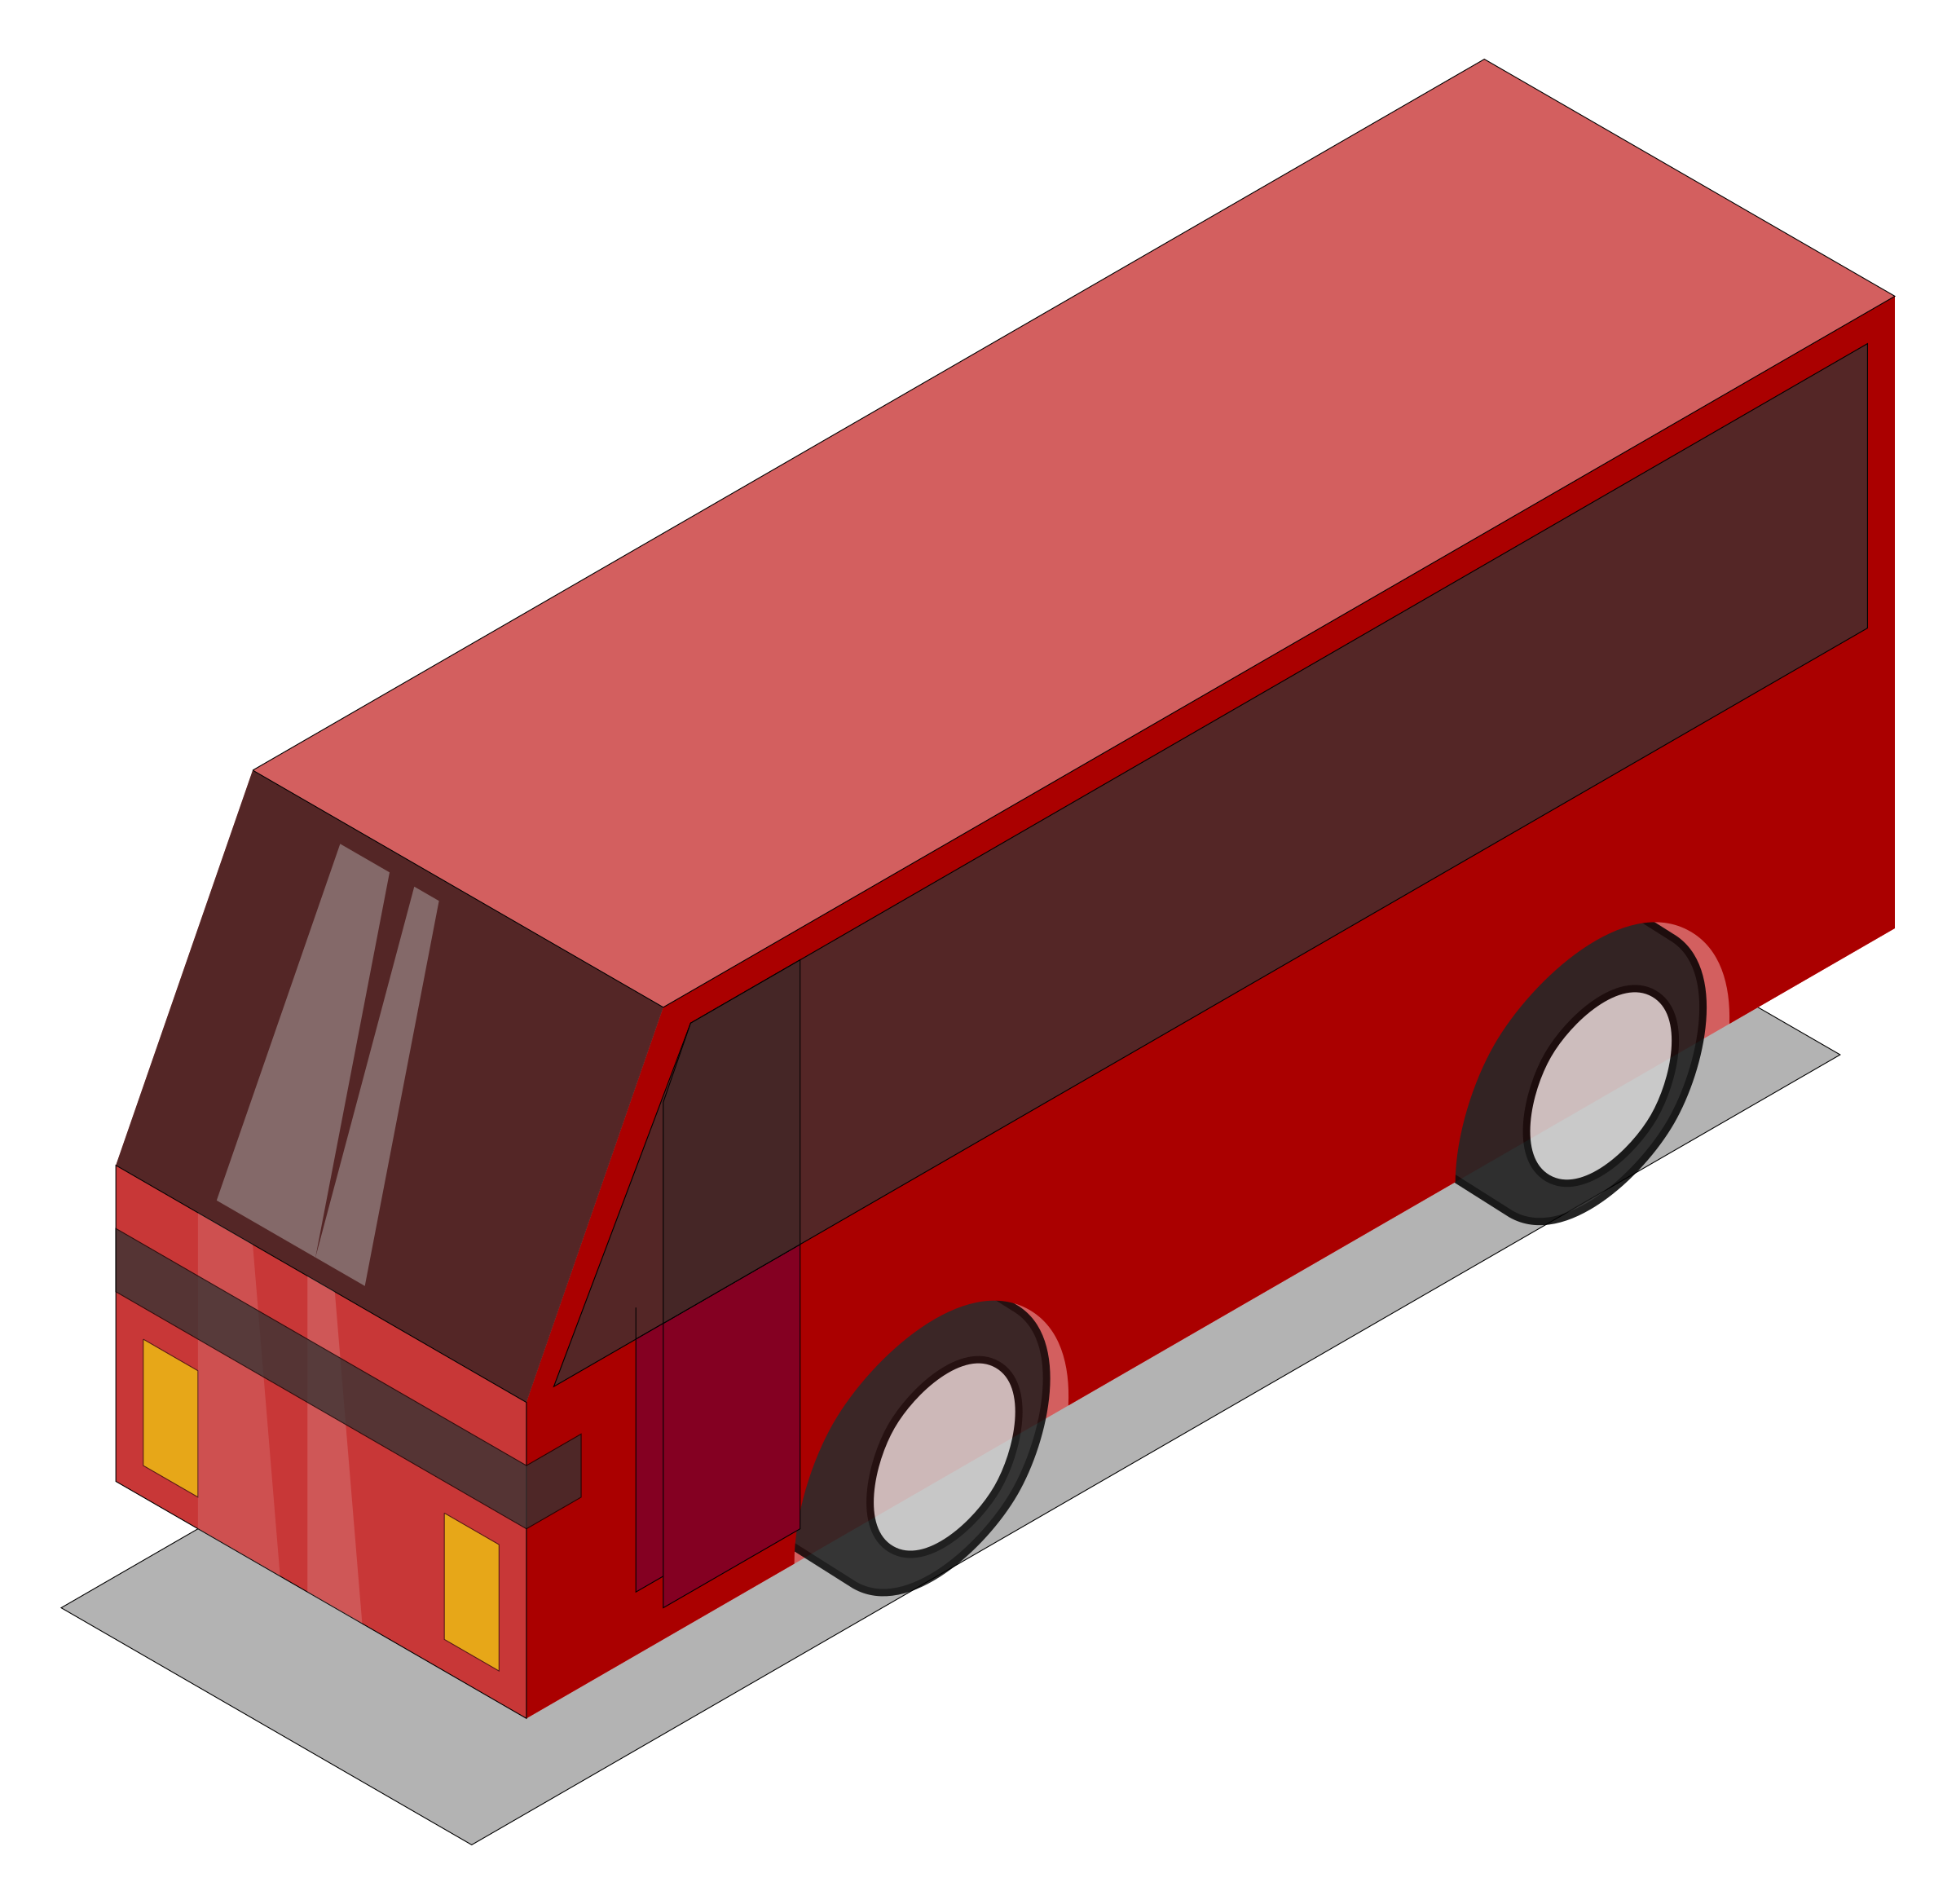 3D Isometric Red Bus by GDJ